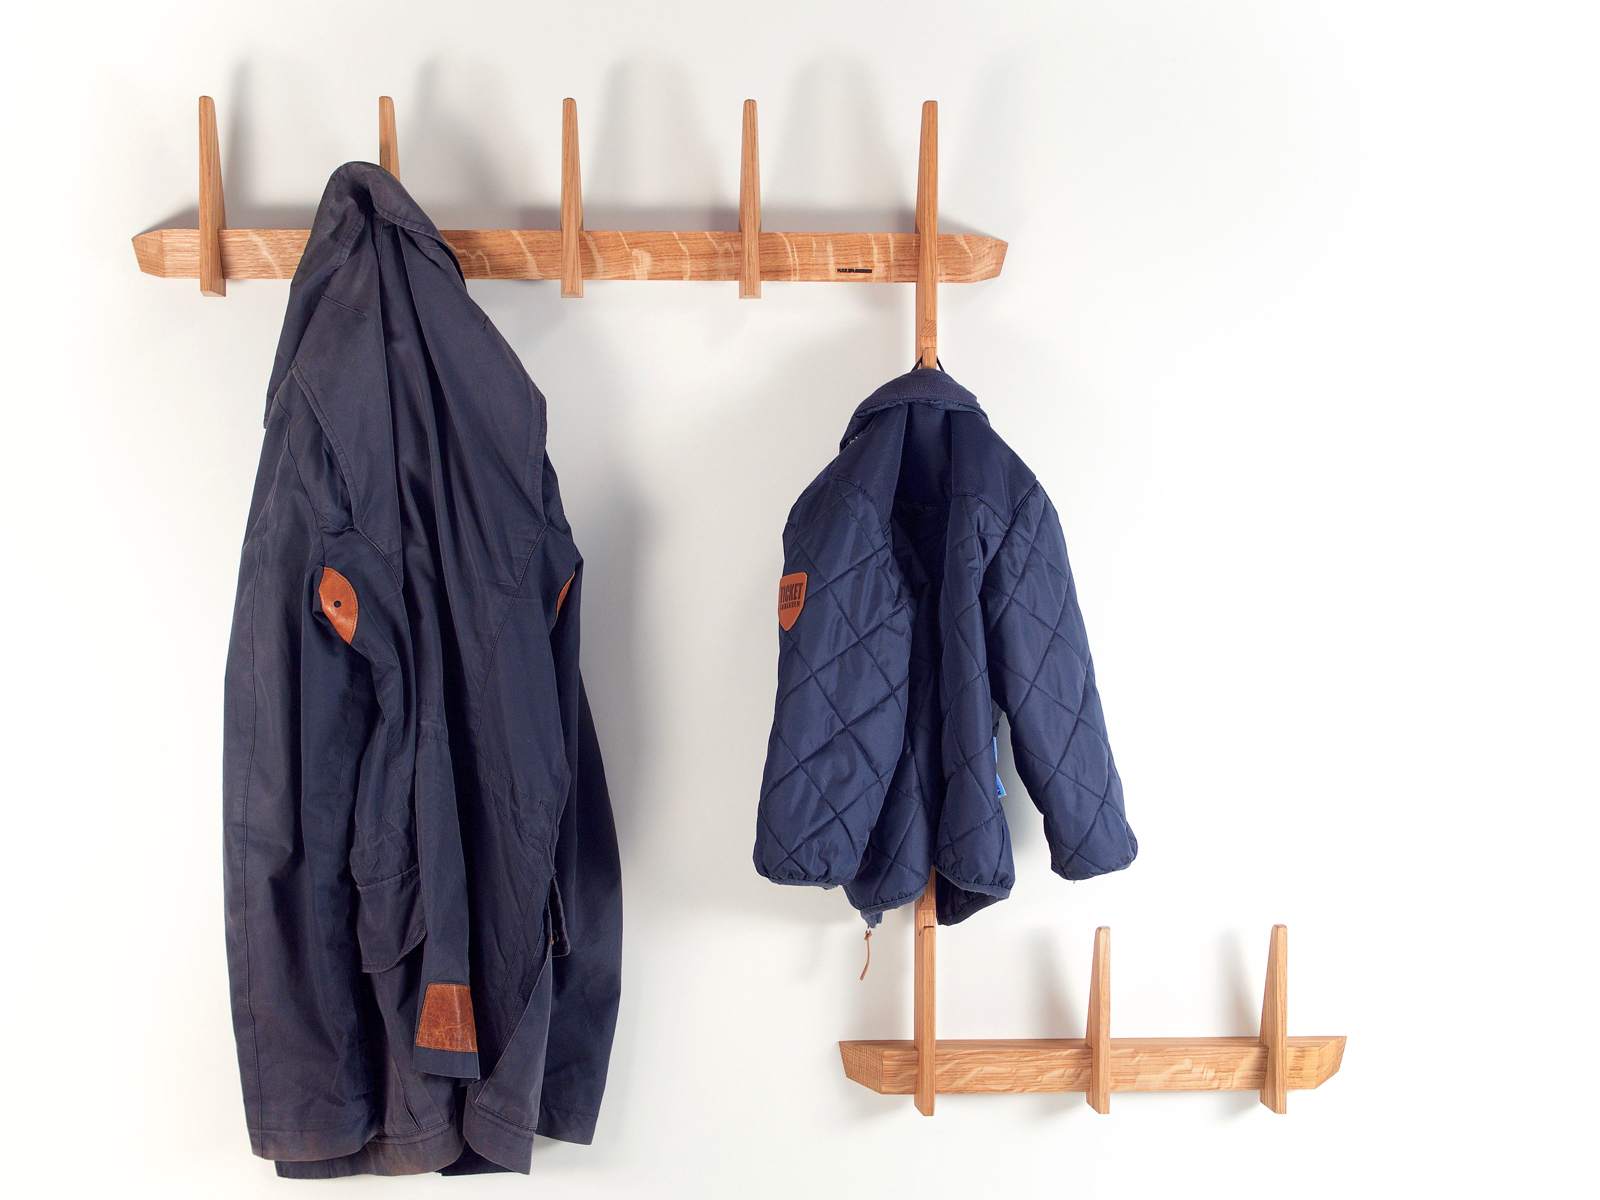 The coat rack tree in oak wood by Hjuler.Design modern Danish Scandinavian design interior nordic living